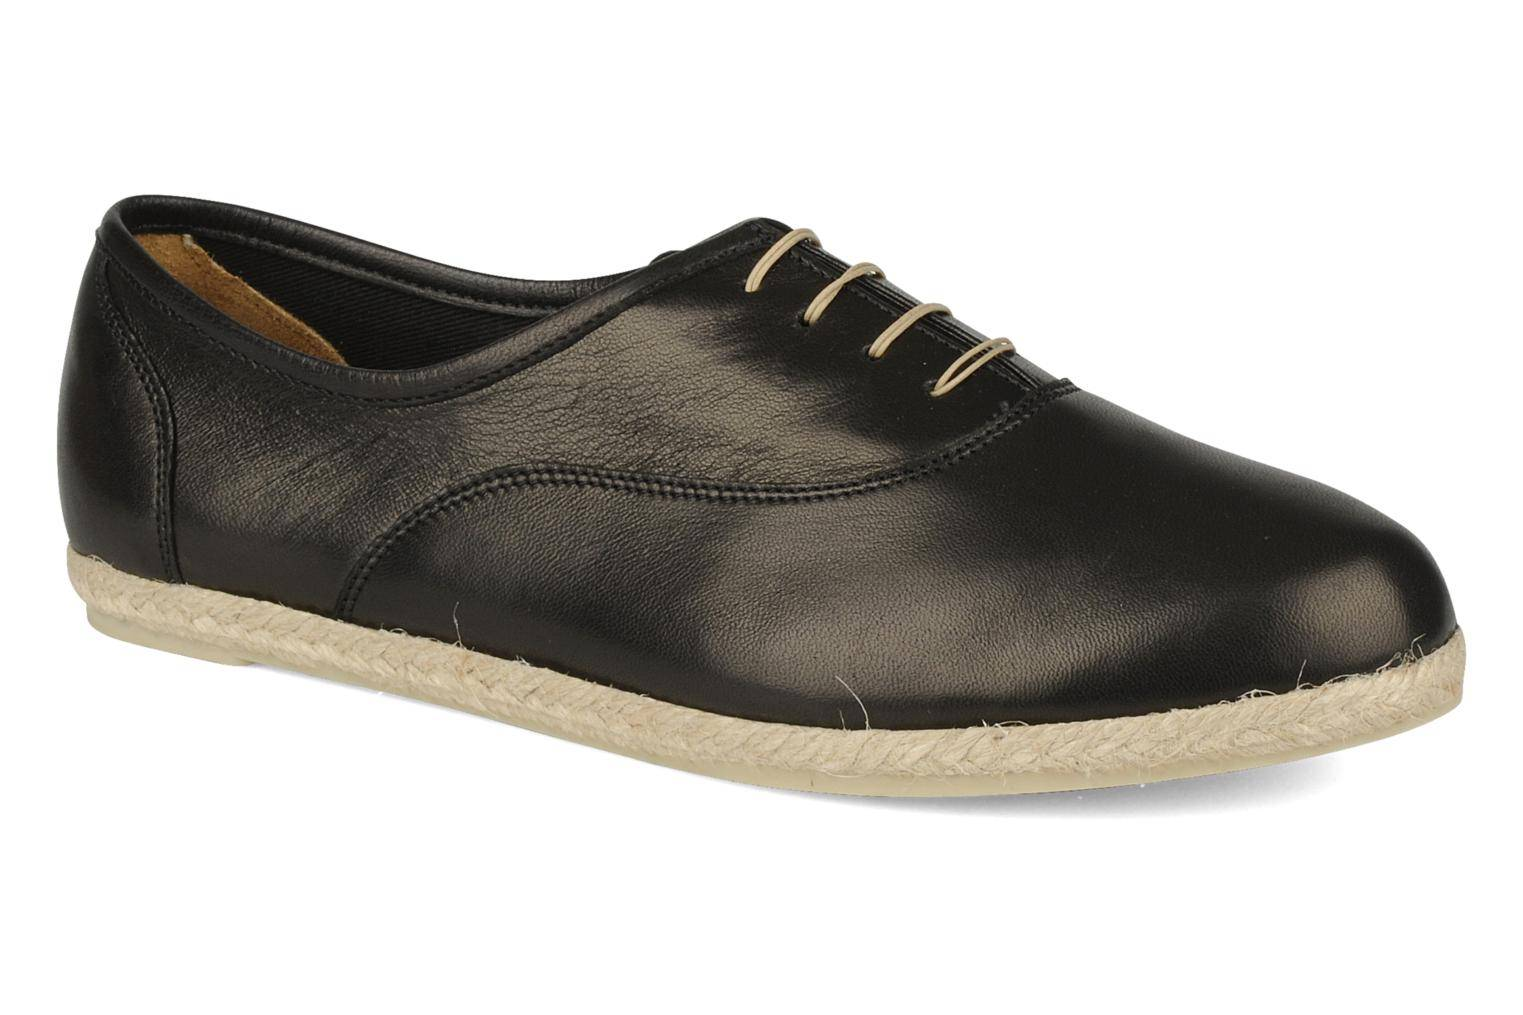 Chaussures � lacets femme